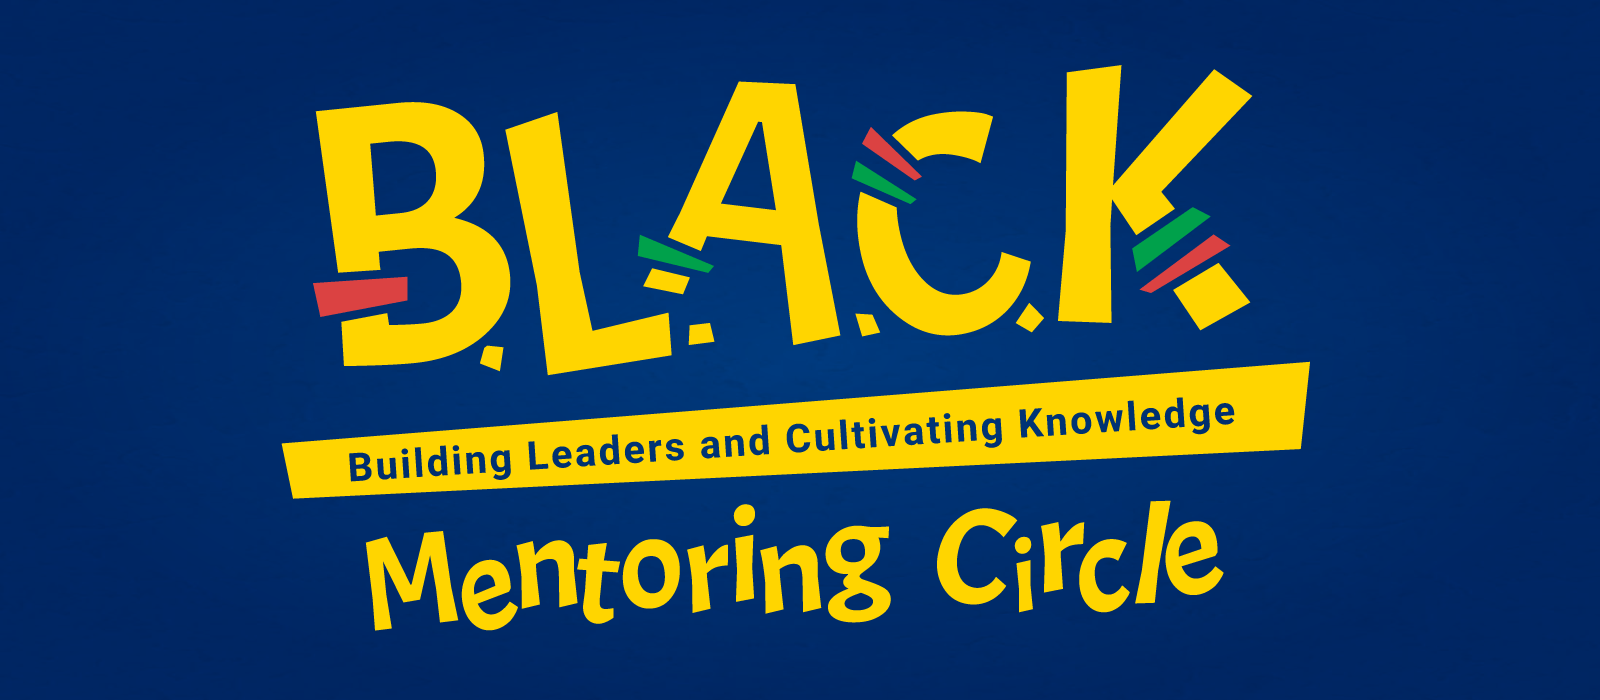 B.L.A.C.K. Building Leaders and Cultivating Knowledge Mentoring Circle